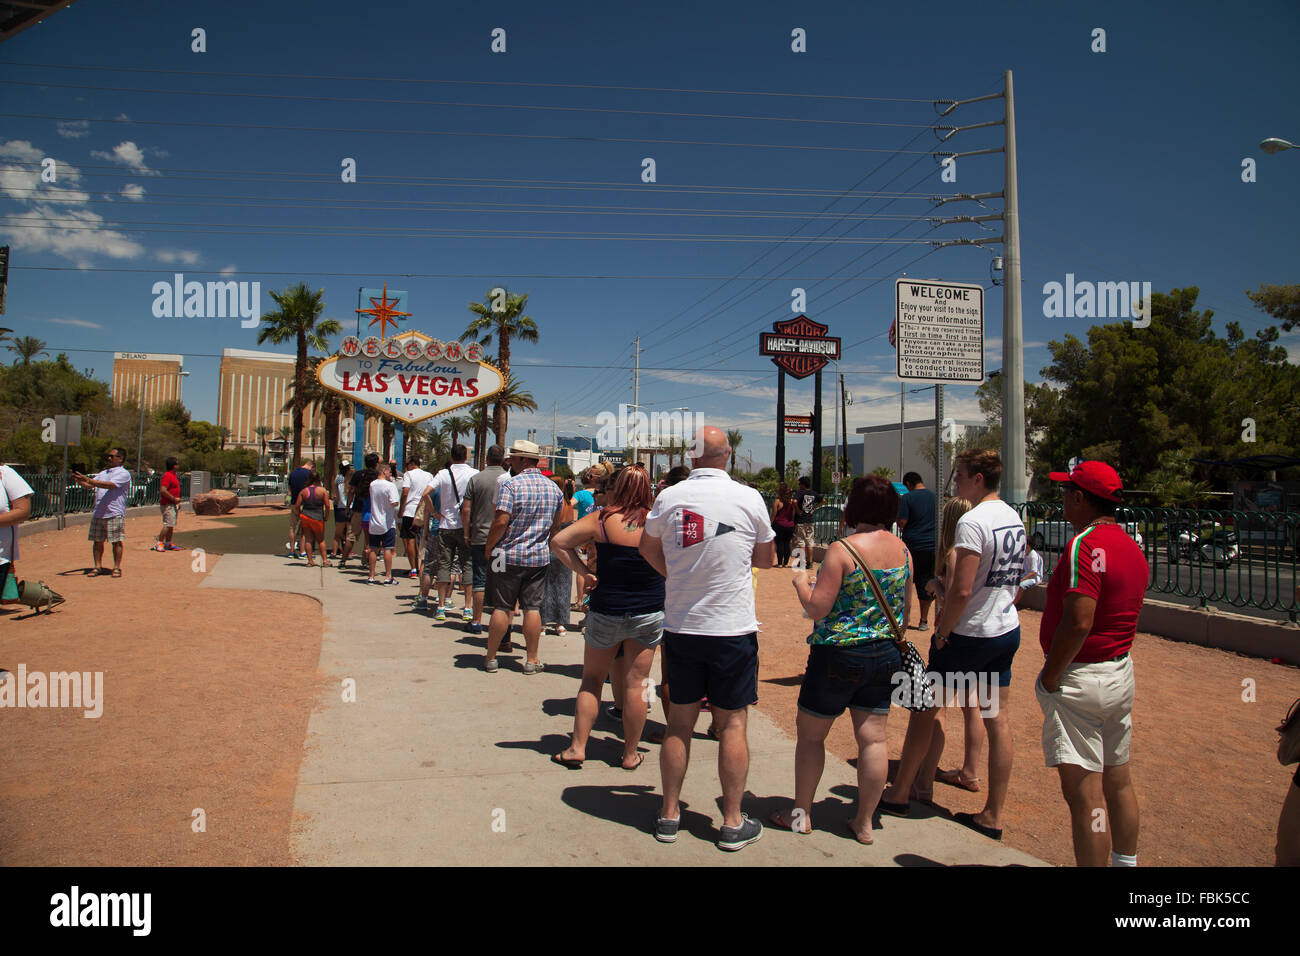 Queue of tourists waiting to take their pictures at the 'Welcome to Las Vegas' Sign. - Stock Image